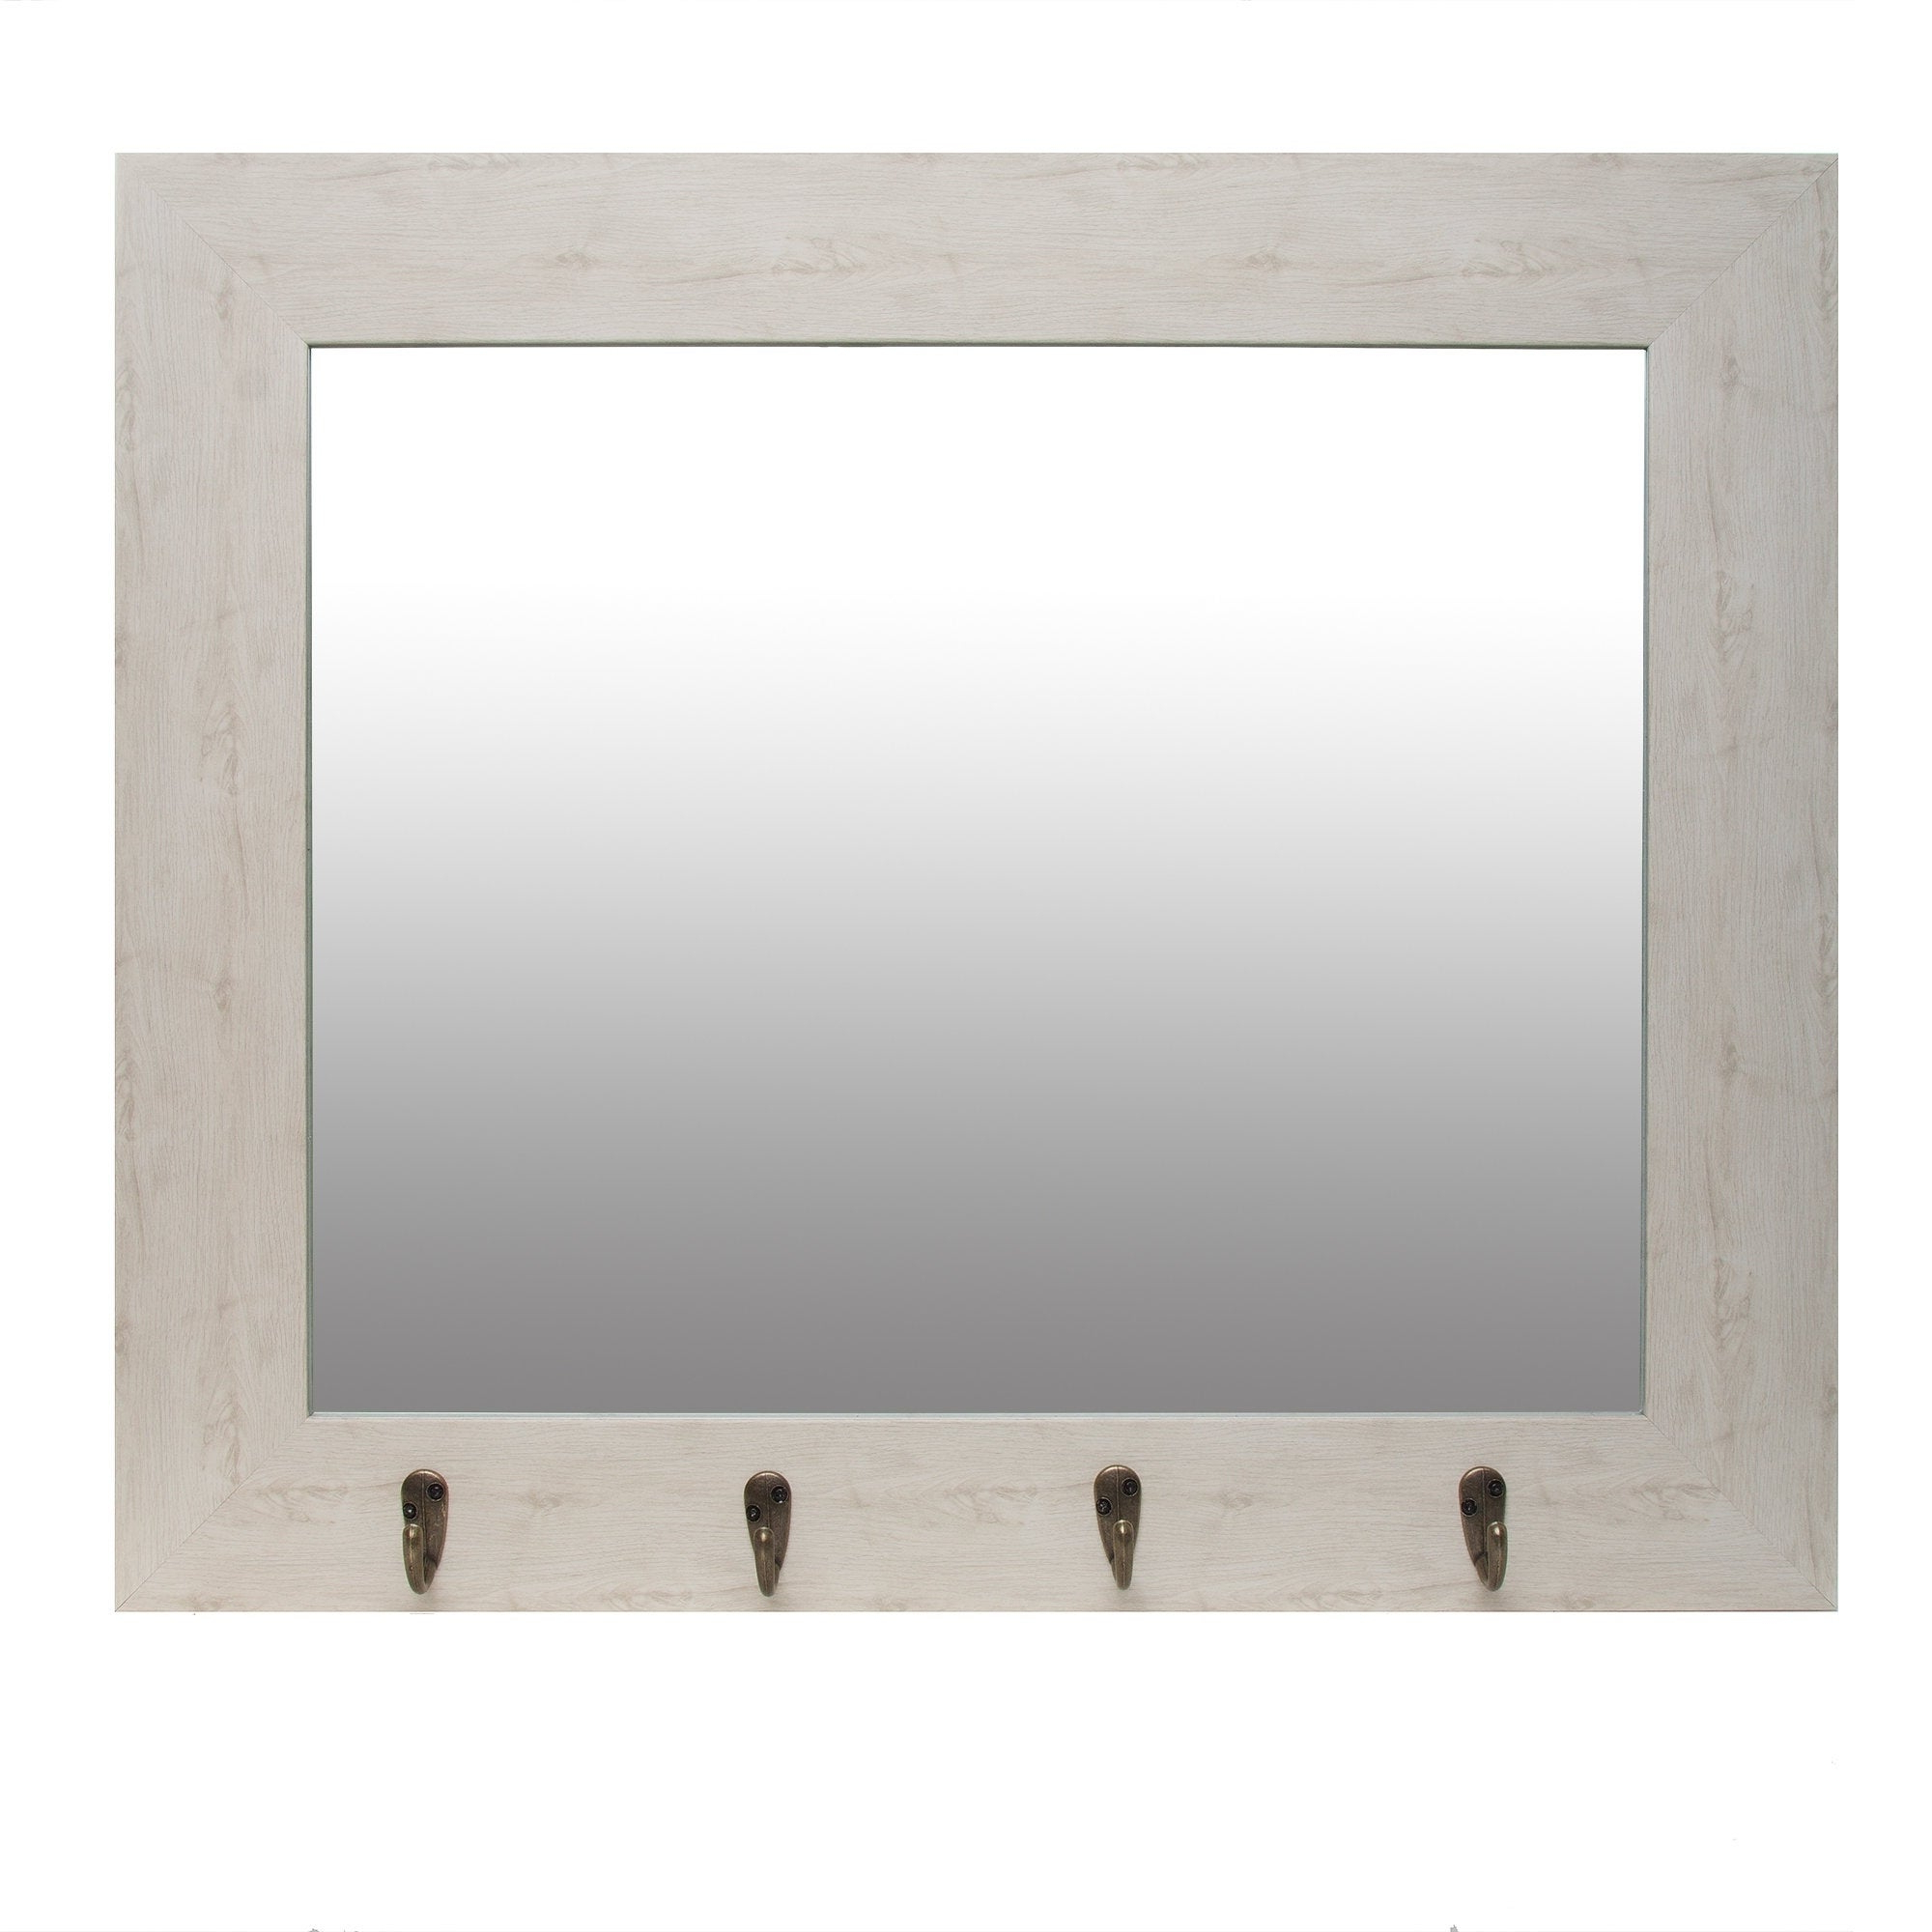 Favorite Foyer Wall Mirror With Hooks Within Entry Wall Mirrors (View 18 of 20)